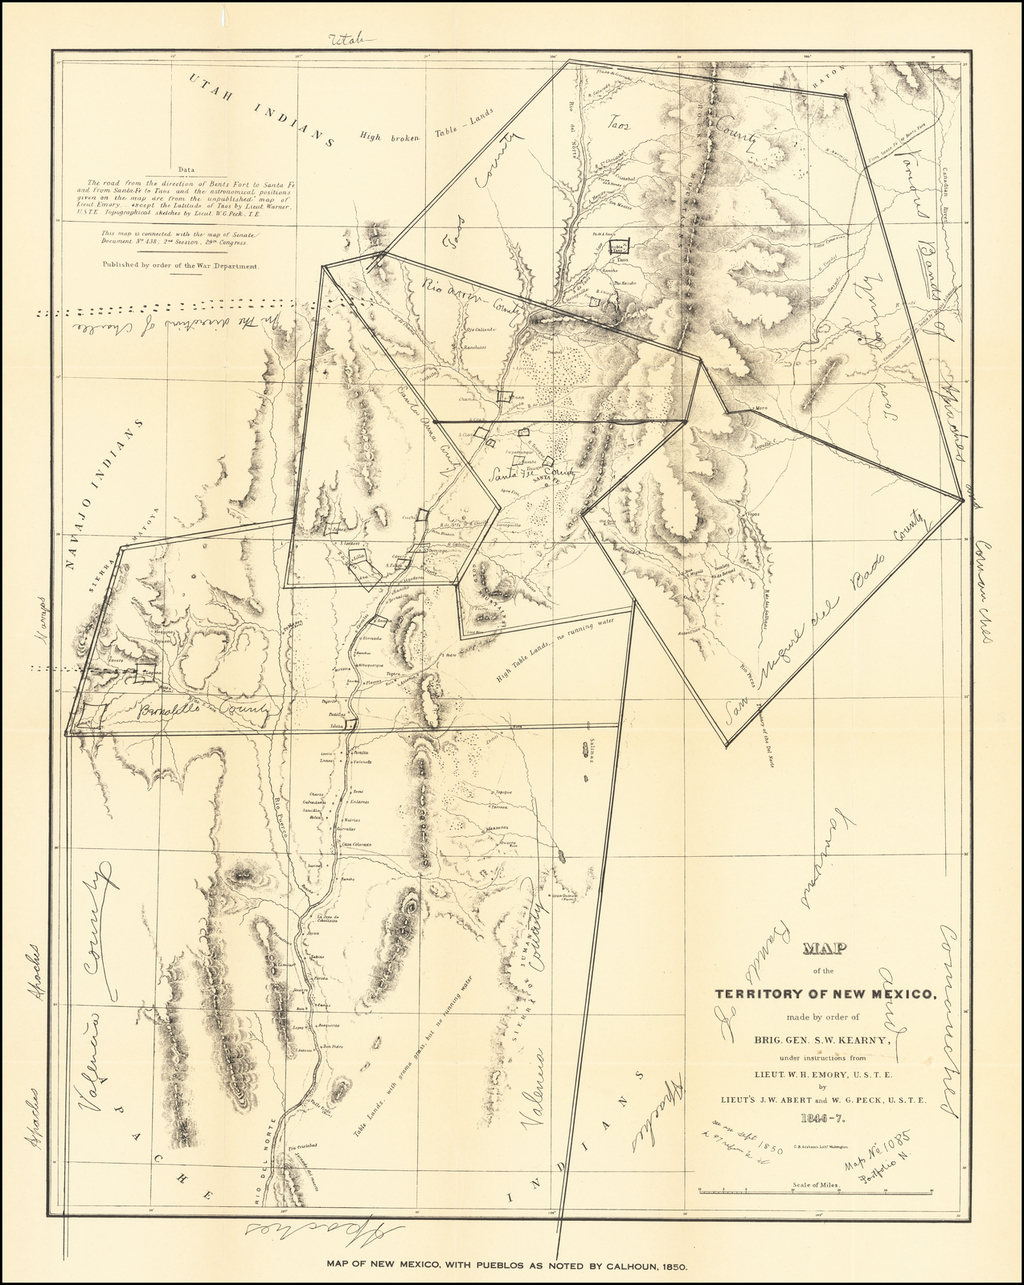 (James S. Calhoun's Annotated Copy) Map of the Territory of New Mexico Made by Order of Brig. Gen. S.W. Kearny under Instructions from Lieut. W.H. Emory, U.S.T.E. by Lieut's J.W. Abert and W.G. Peck, U.S.T.E., 1846-7 By United States GPO